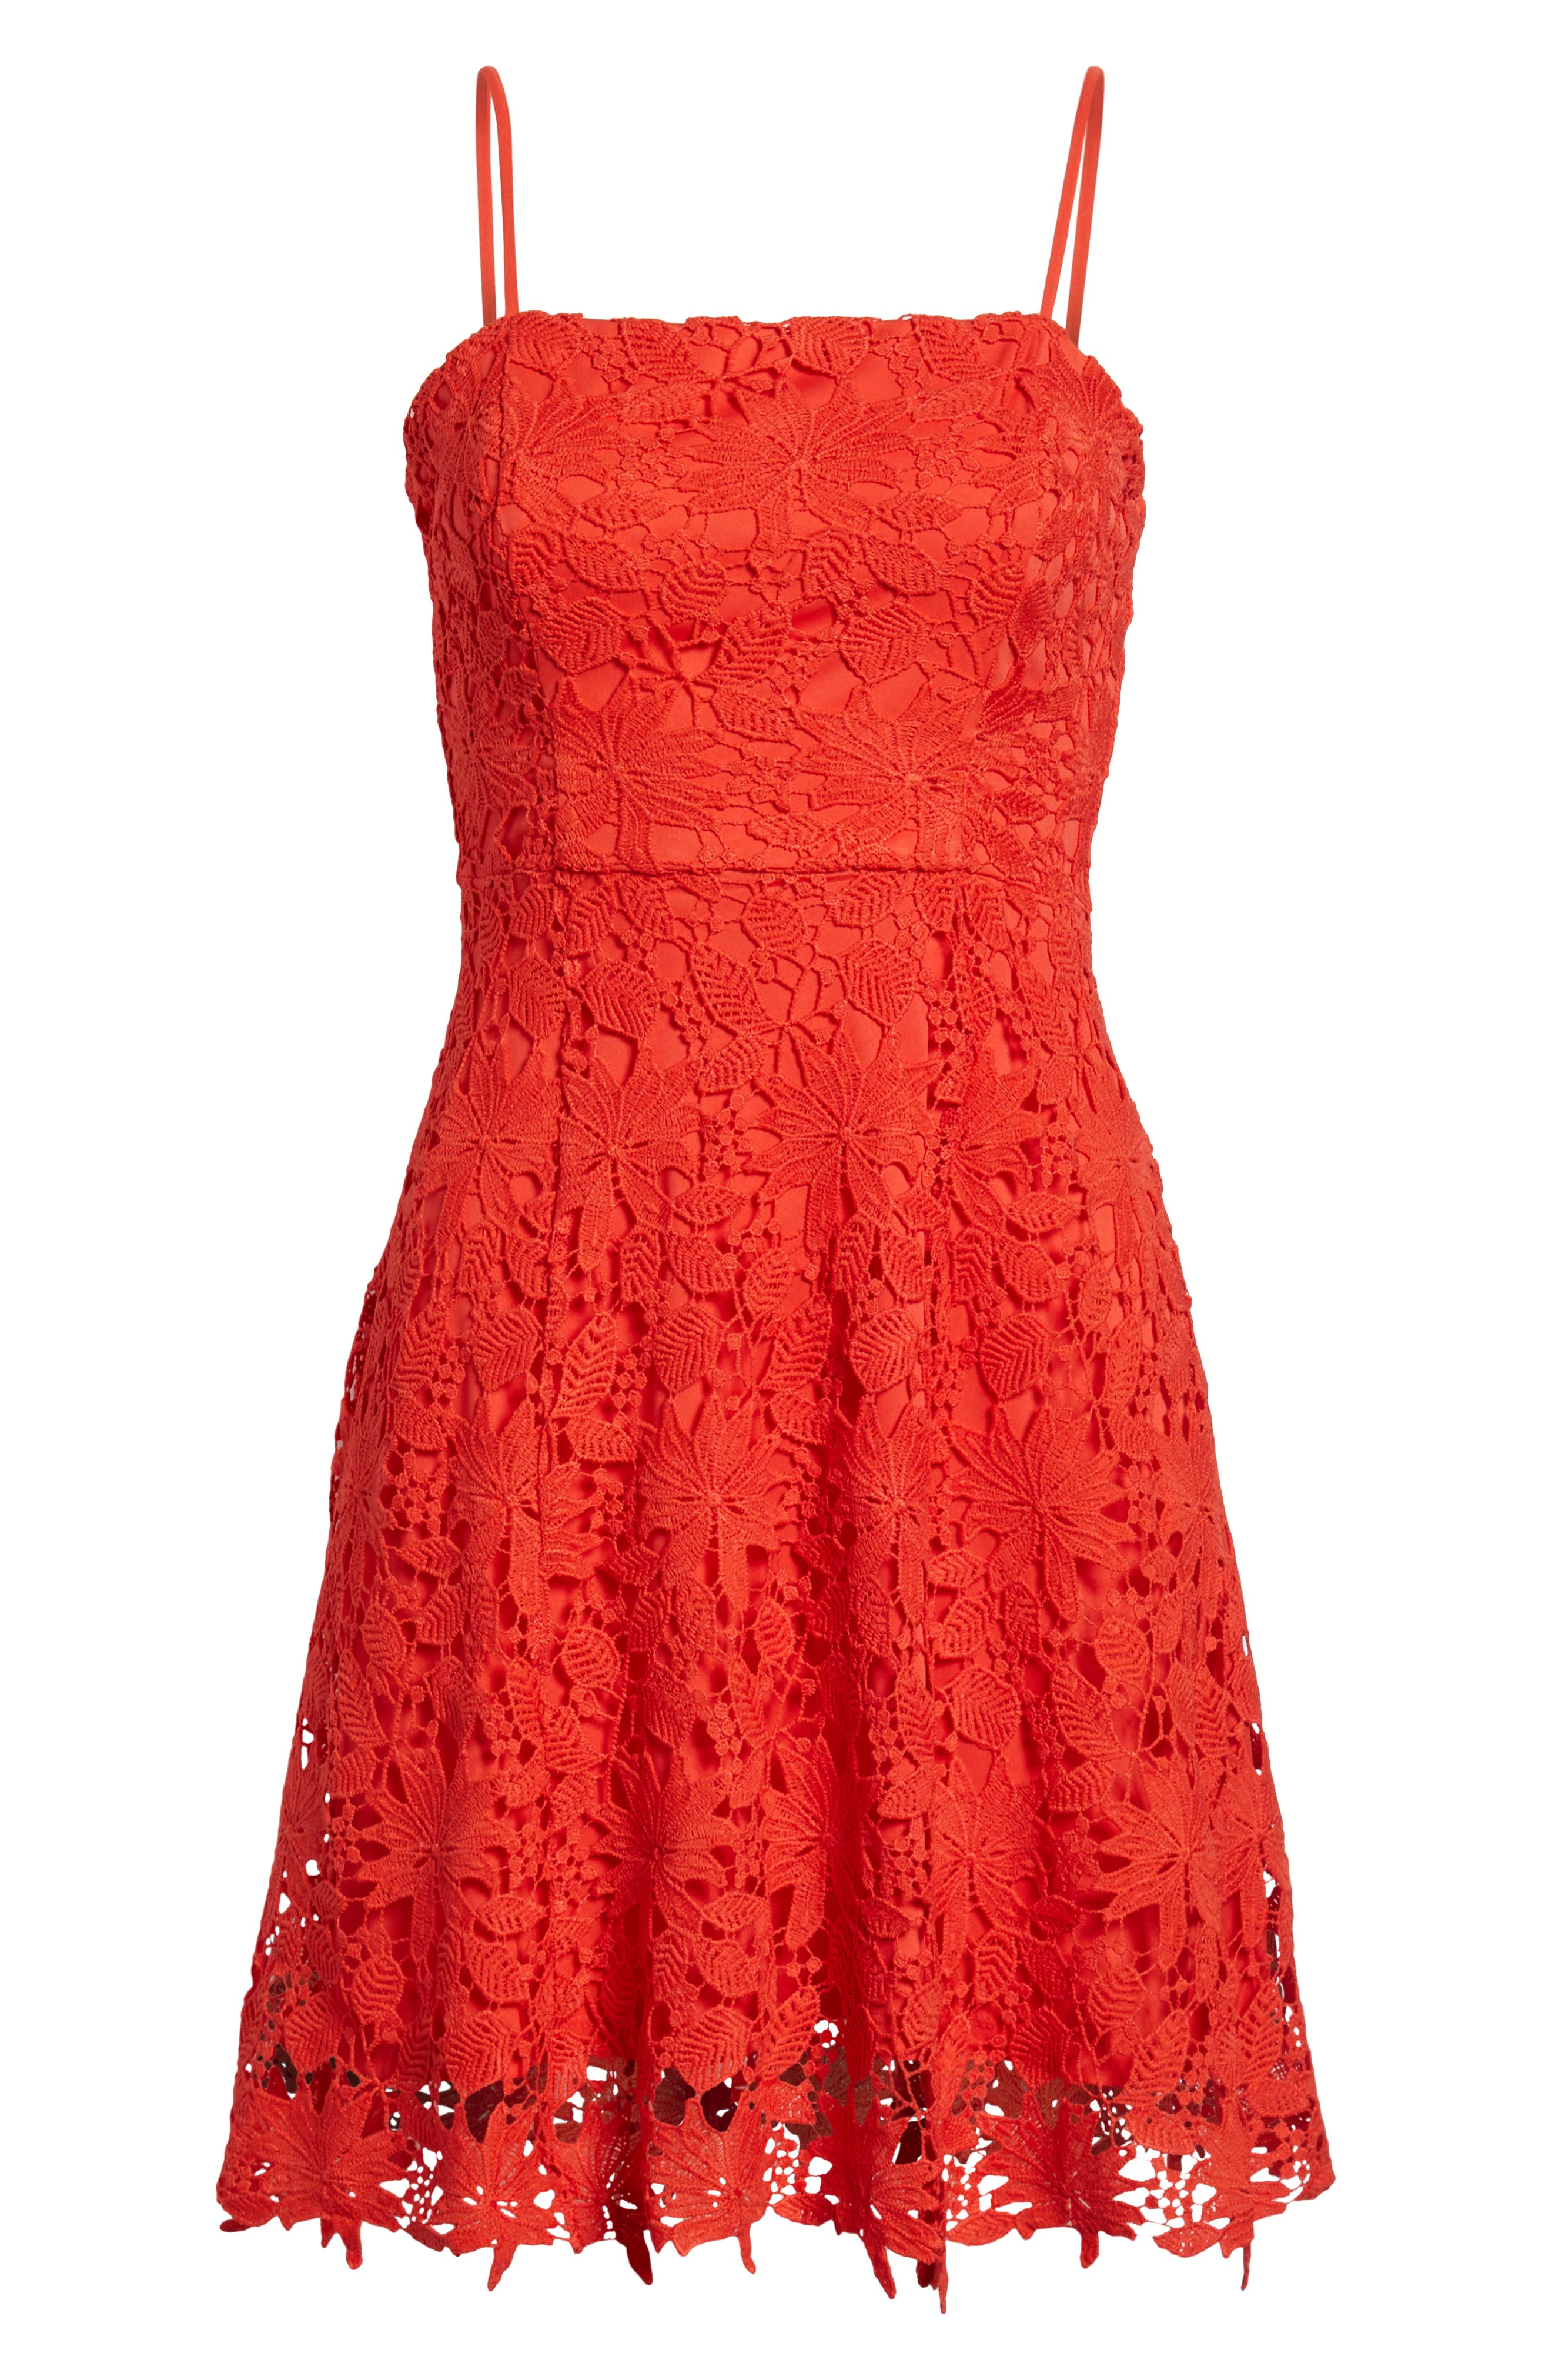 Lace Fit & Flare Dress,                             Alternate thumbnail 7, color,                             620